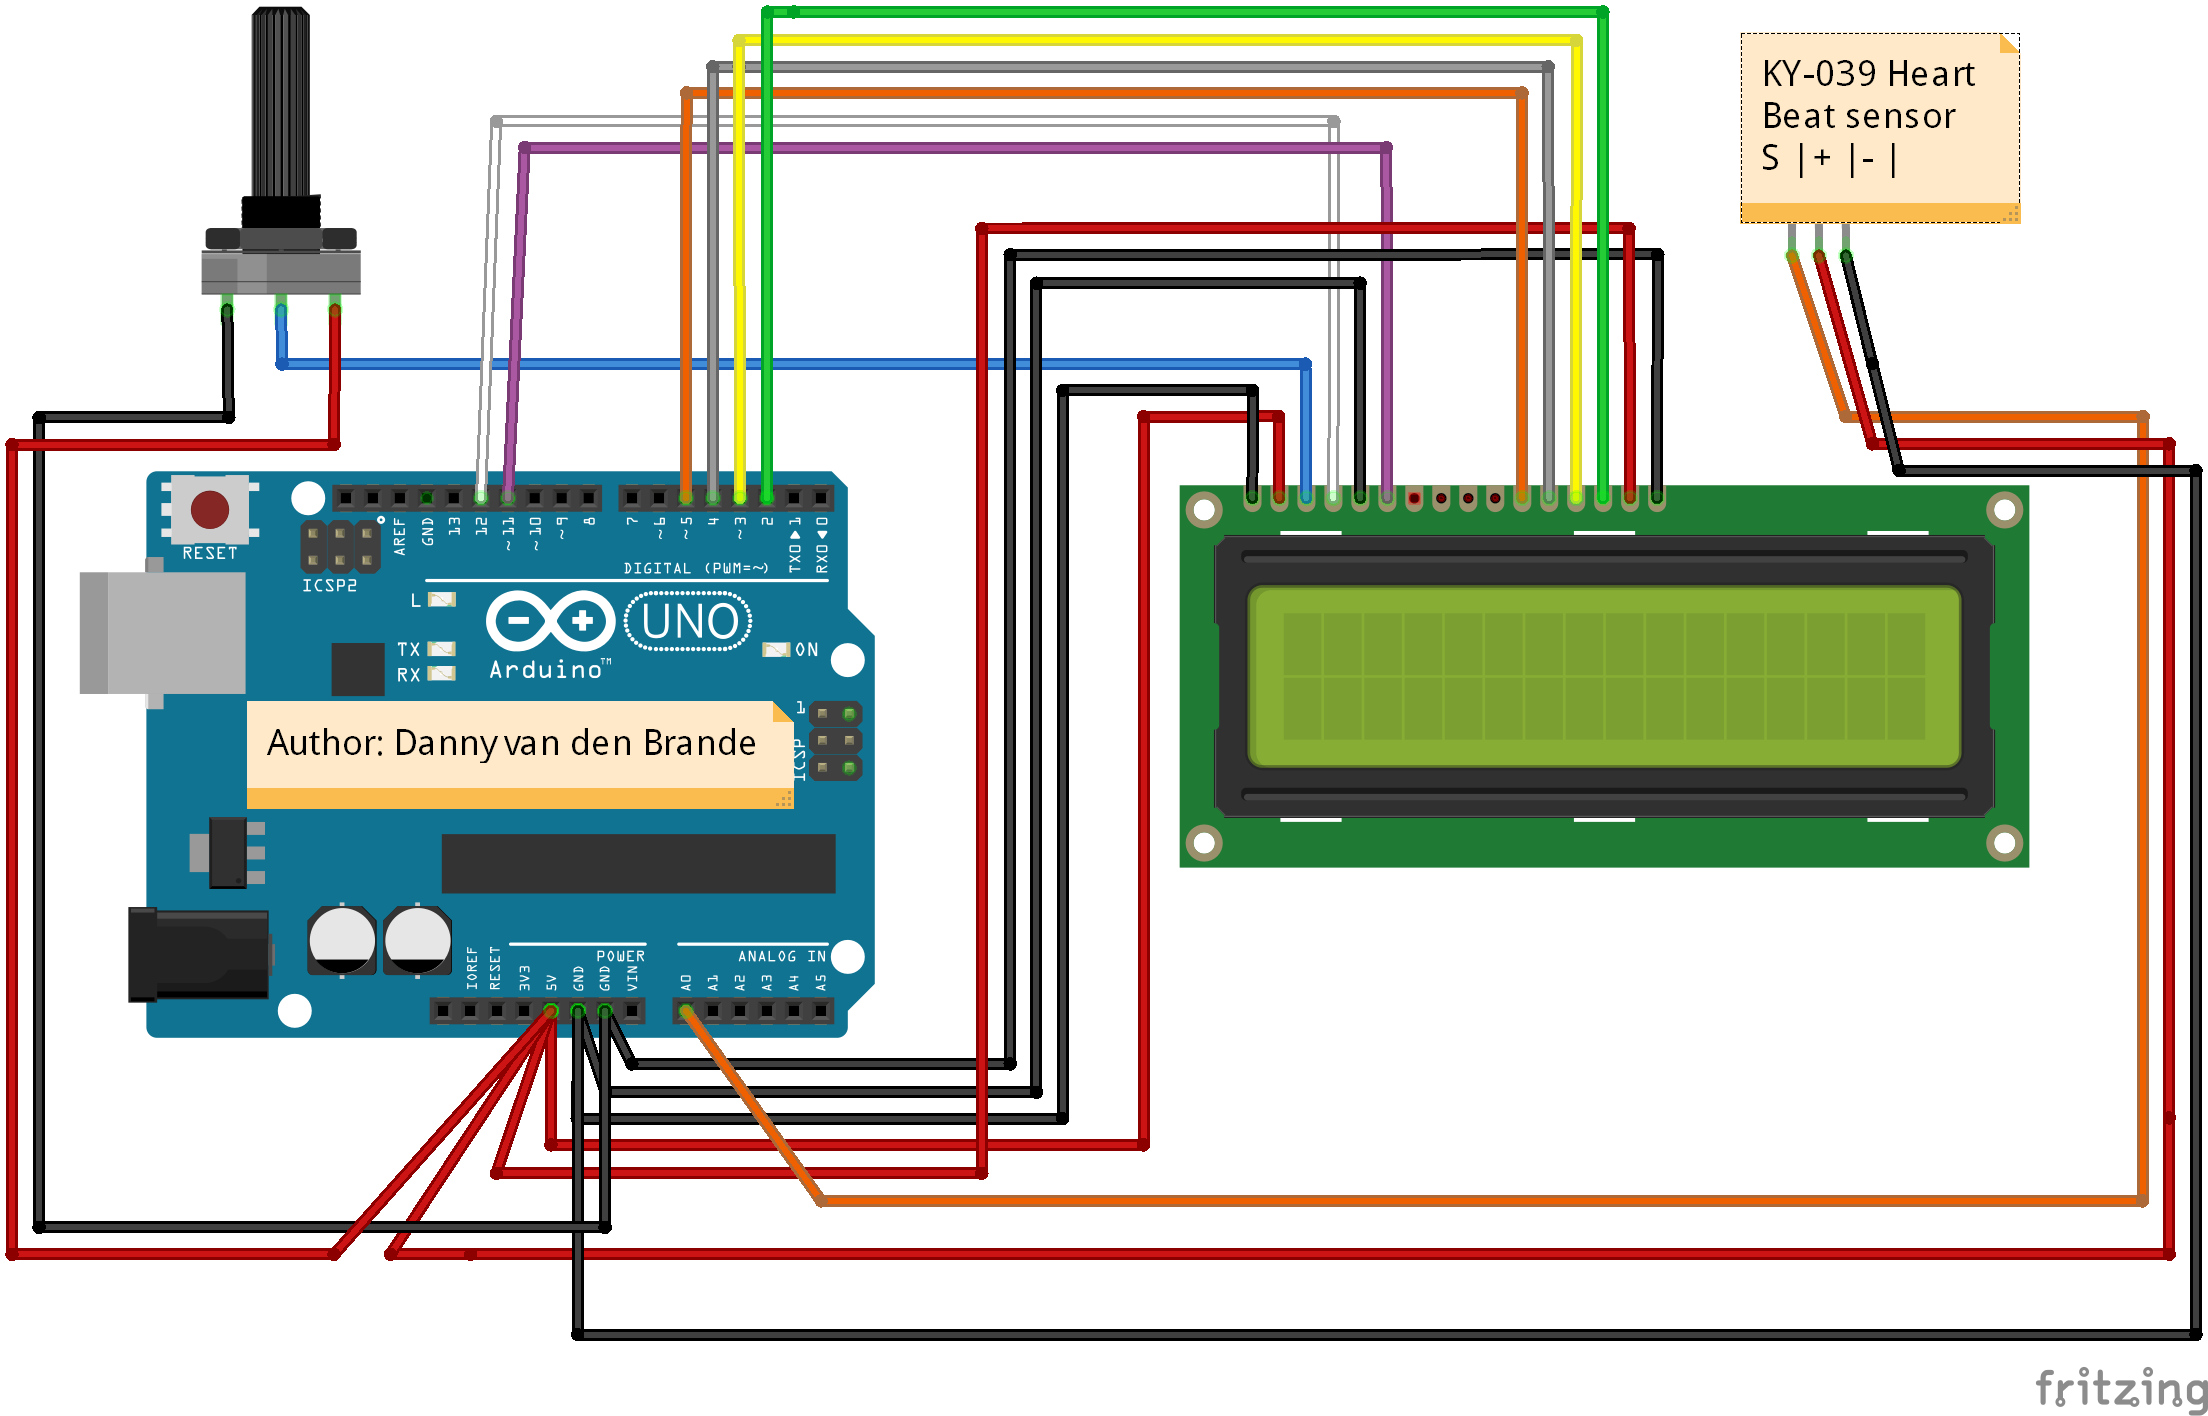 Circuit Diagram Of Heartbeat Monitor 36 Wiring Images With Led And Photocell Youspice Ky 039 Heart Beat Lcd1602a Bbautocompress2cformatw900h675fit